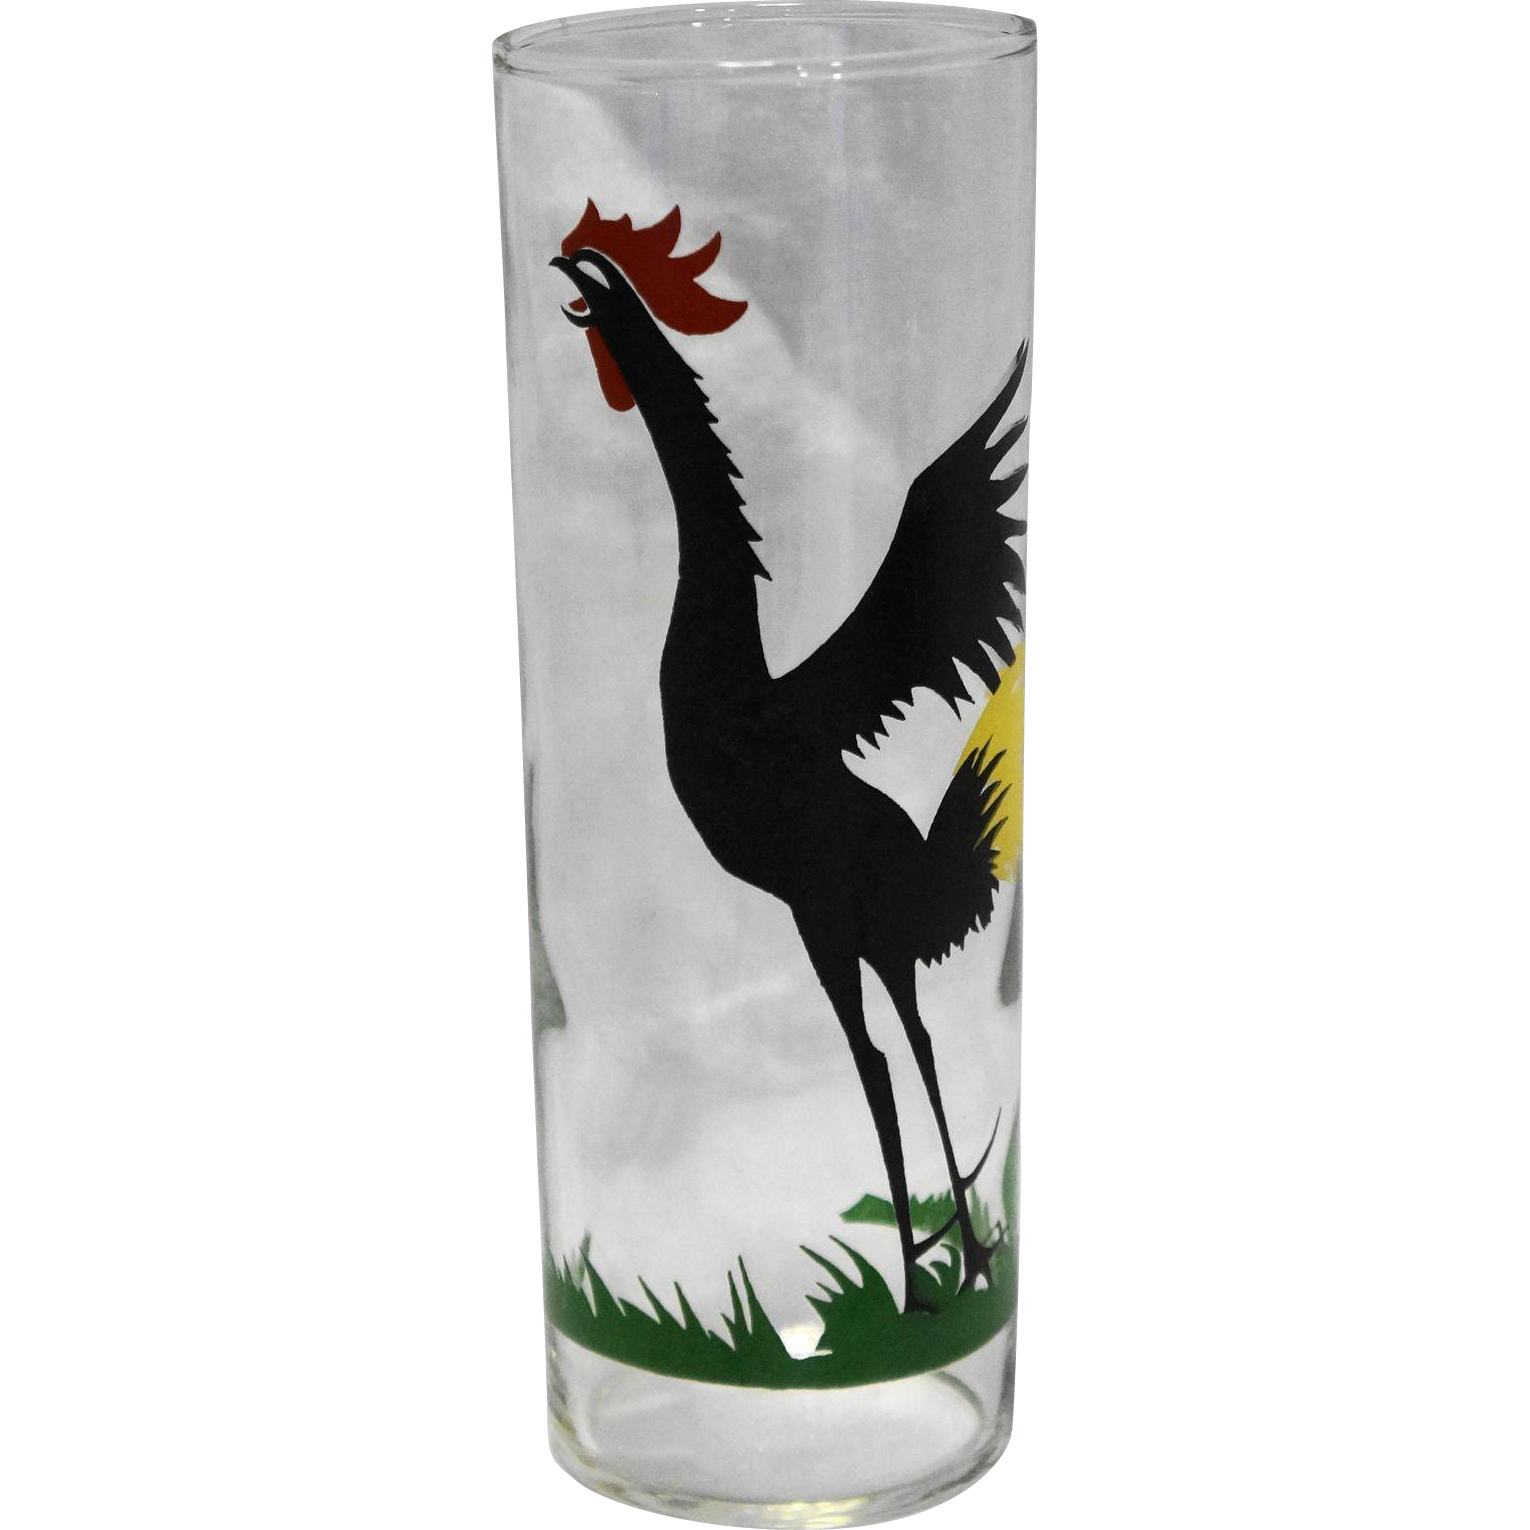 Federal Glass Cock Cro Black Rooster Tall Tom Collins Lemonade Iced Tea Tumbler